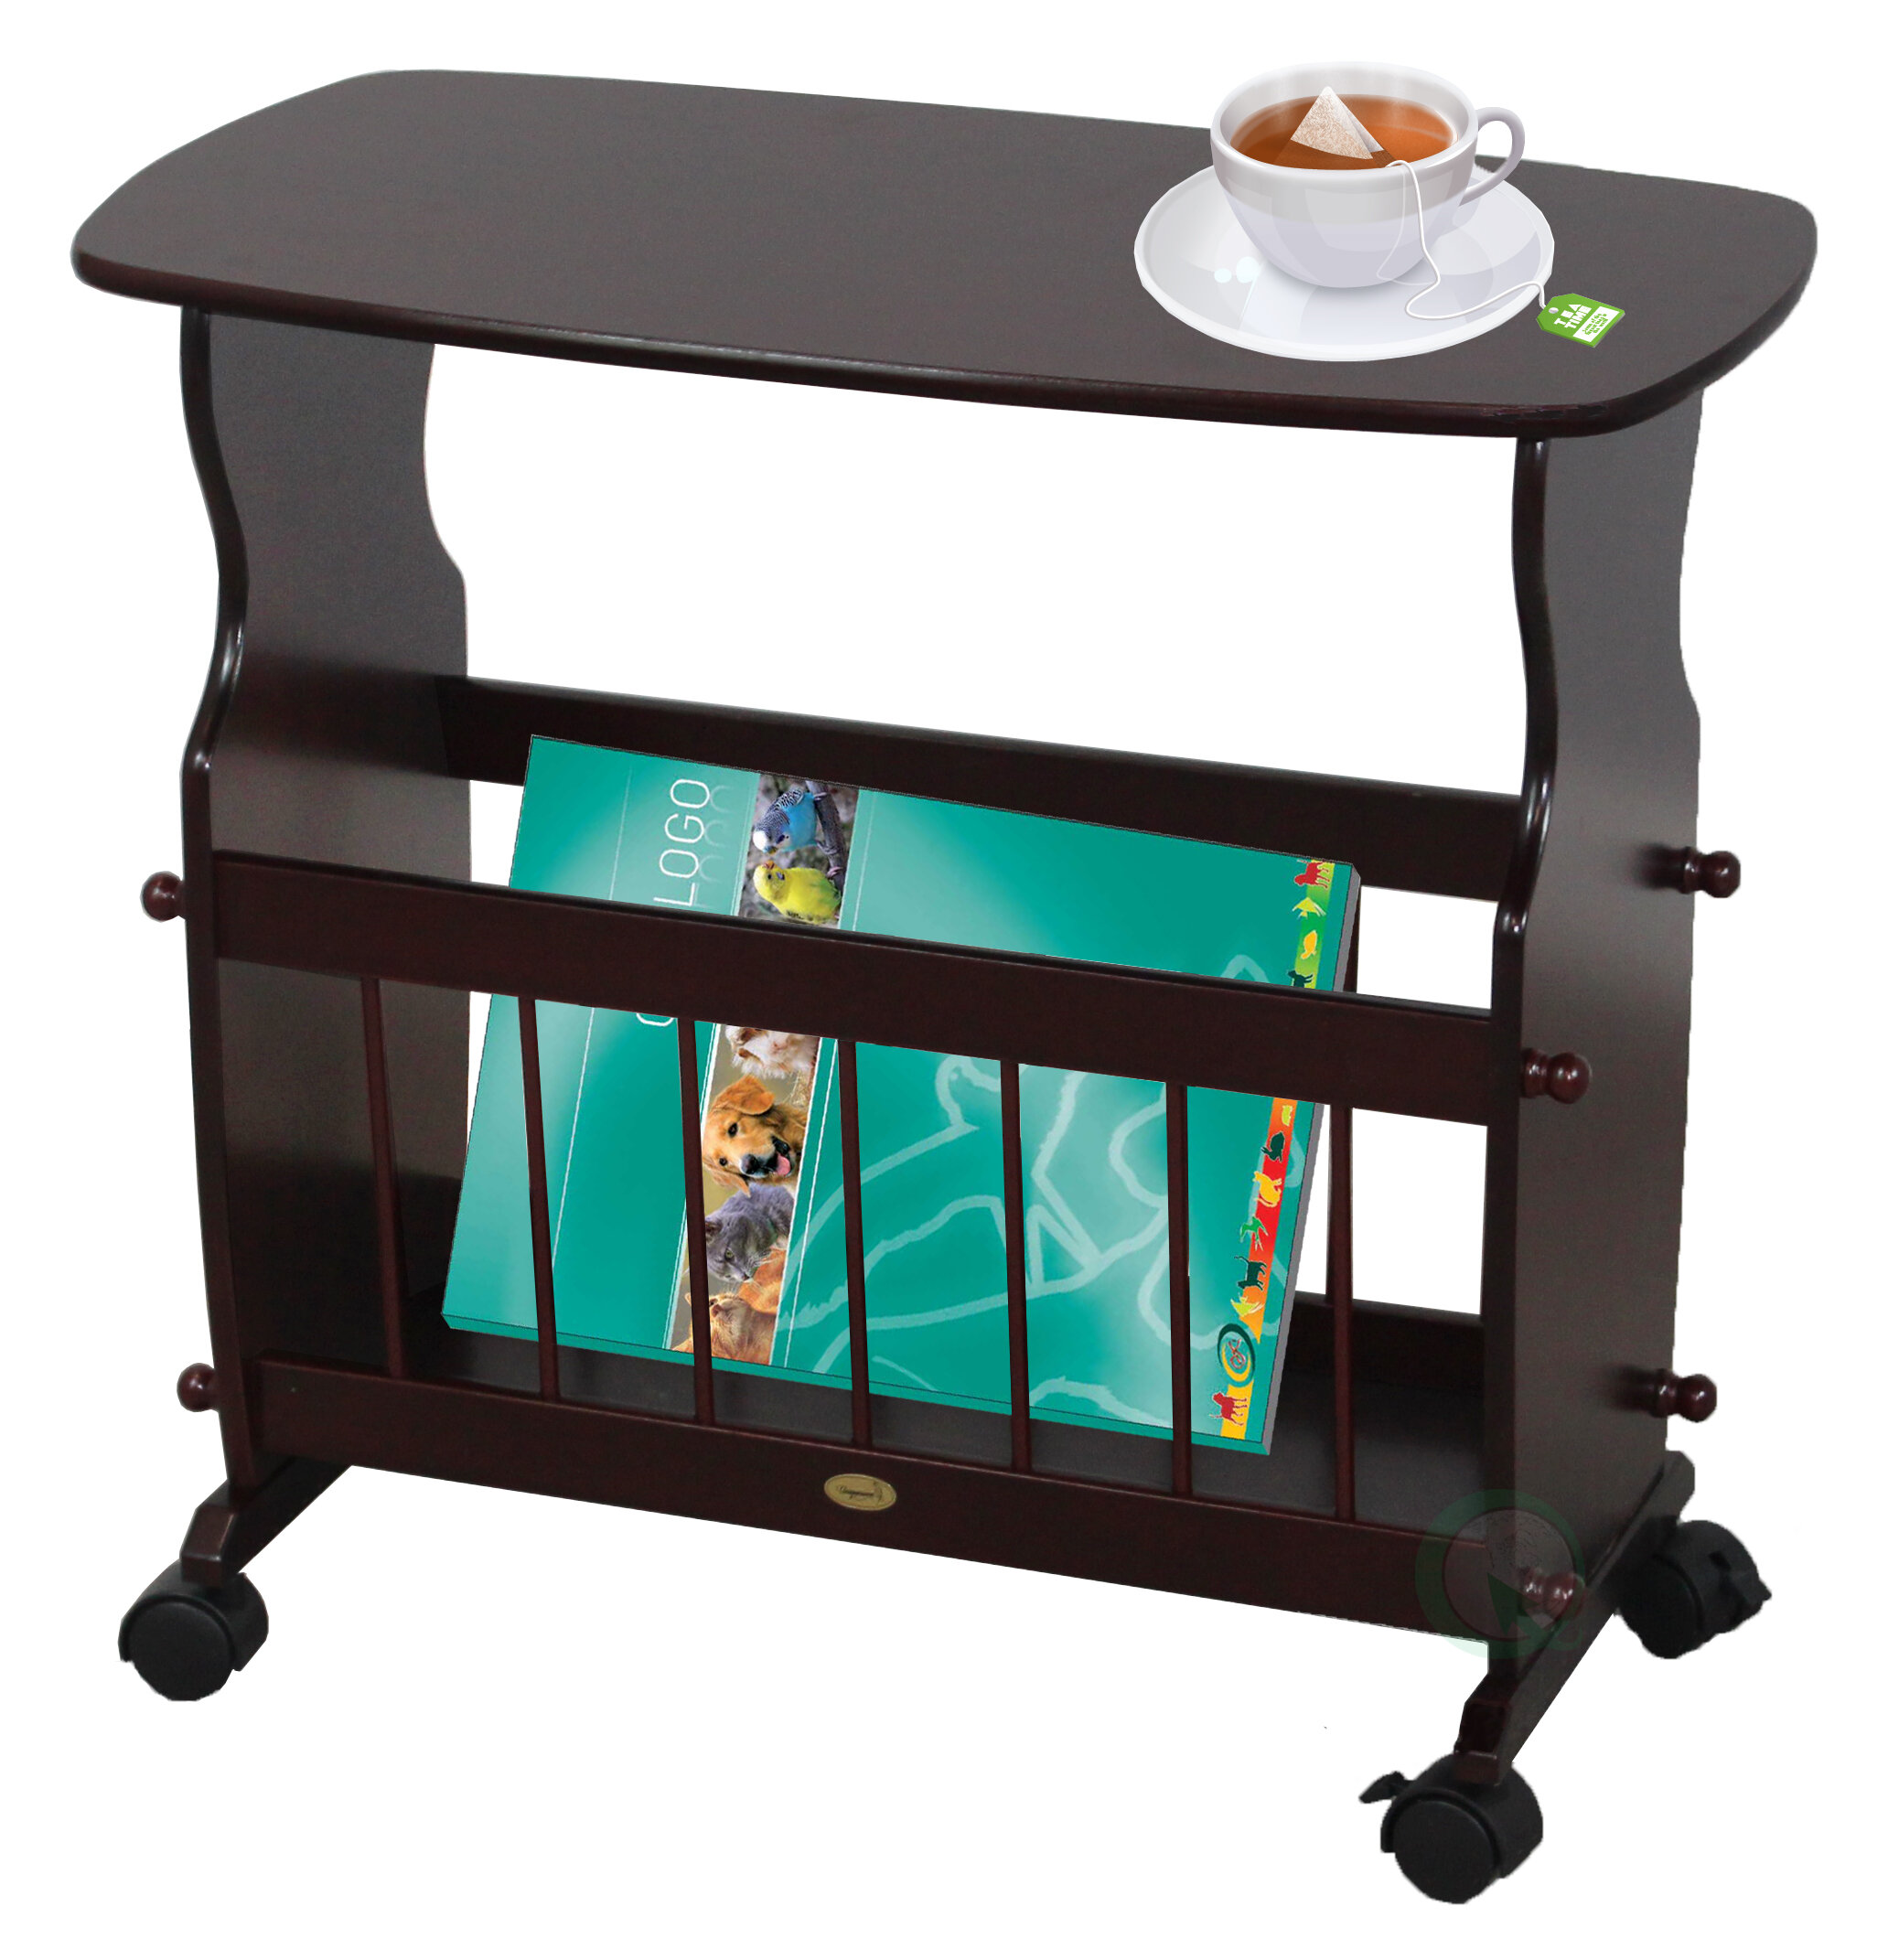 Uniquewise Wooden Magazine Rack Table with Rolling Casters | Wayfair